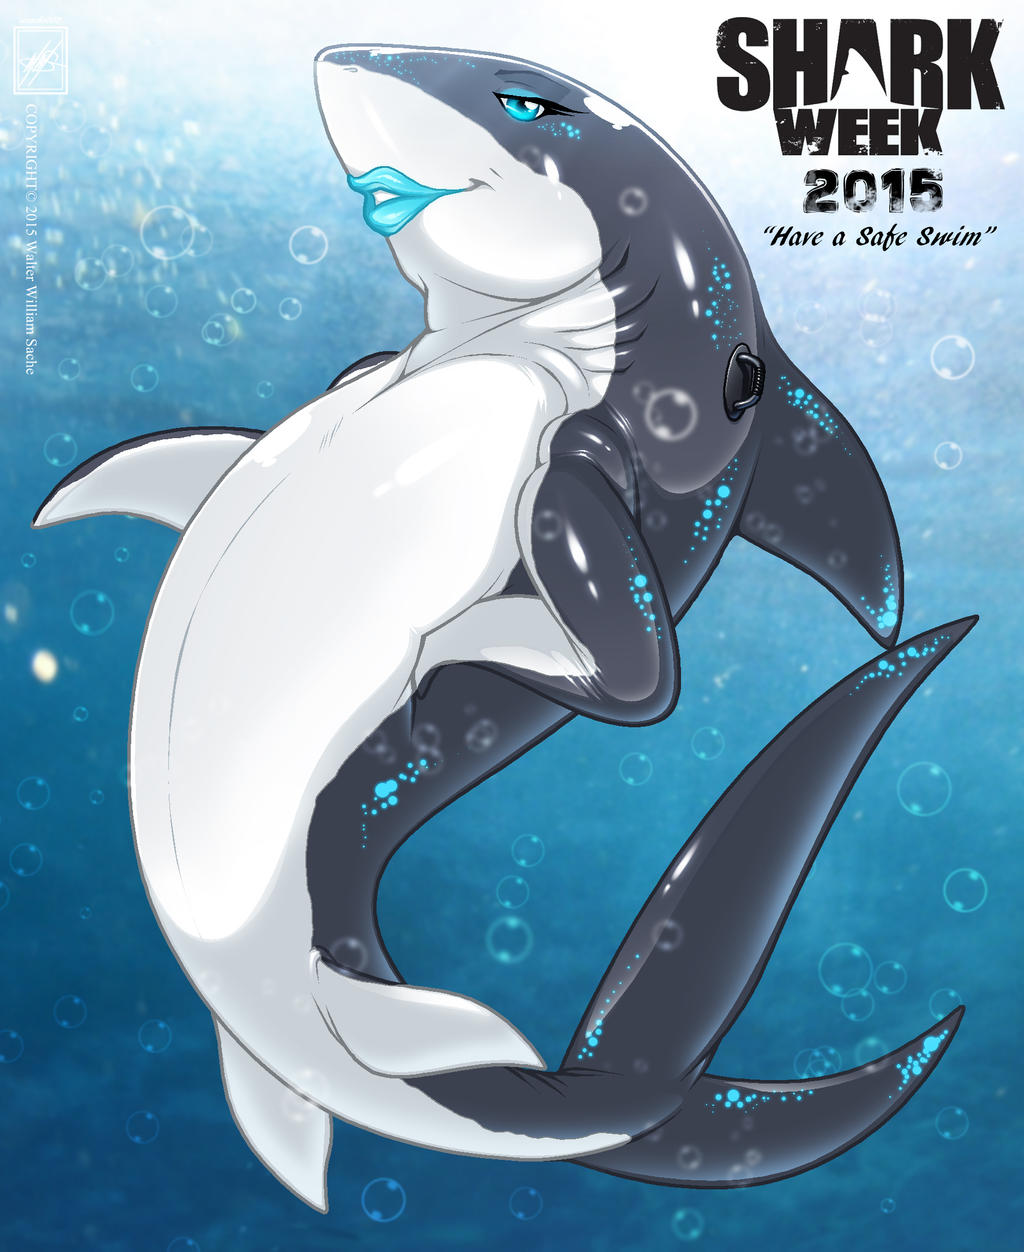 Inflatable Pool Shark Toy_Happy Shark Week 2015!!! by wsache2020